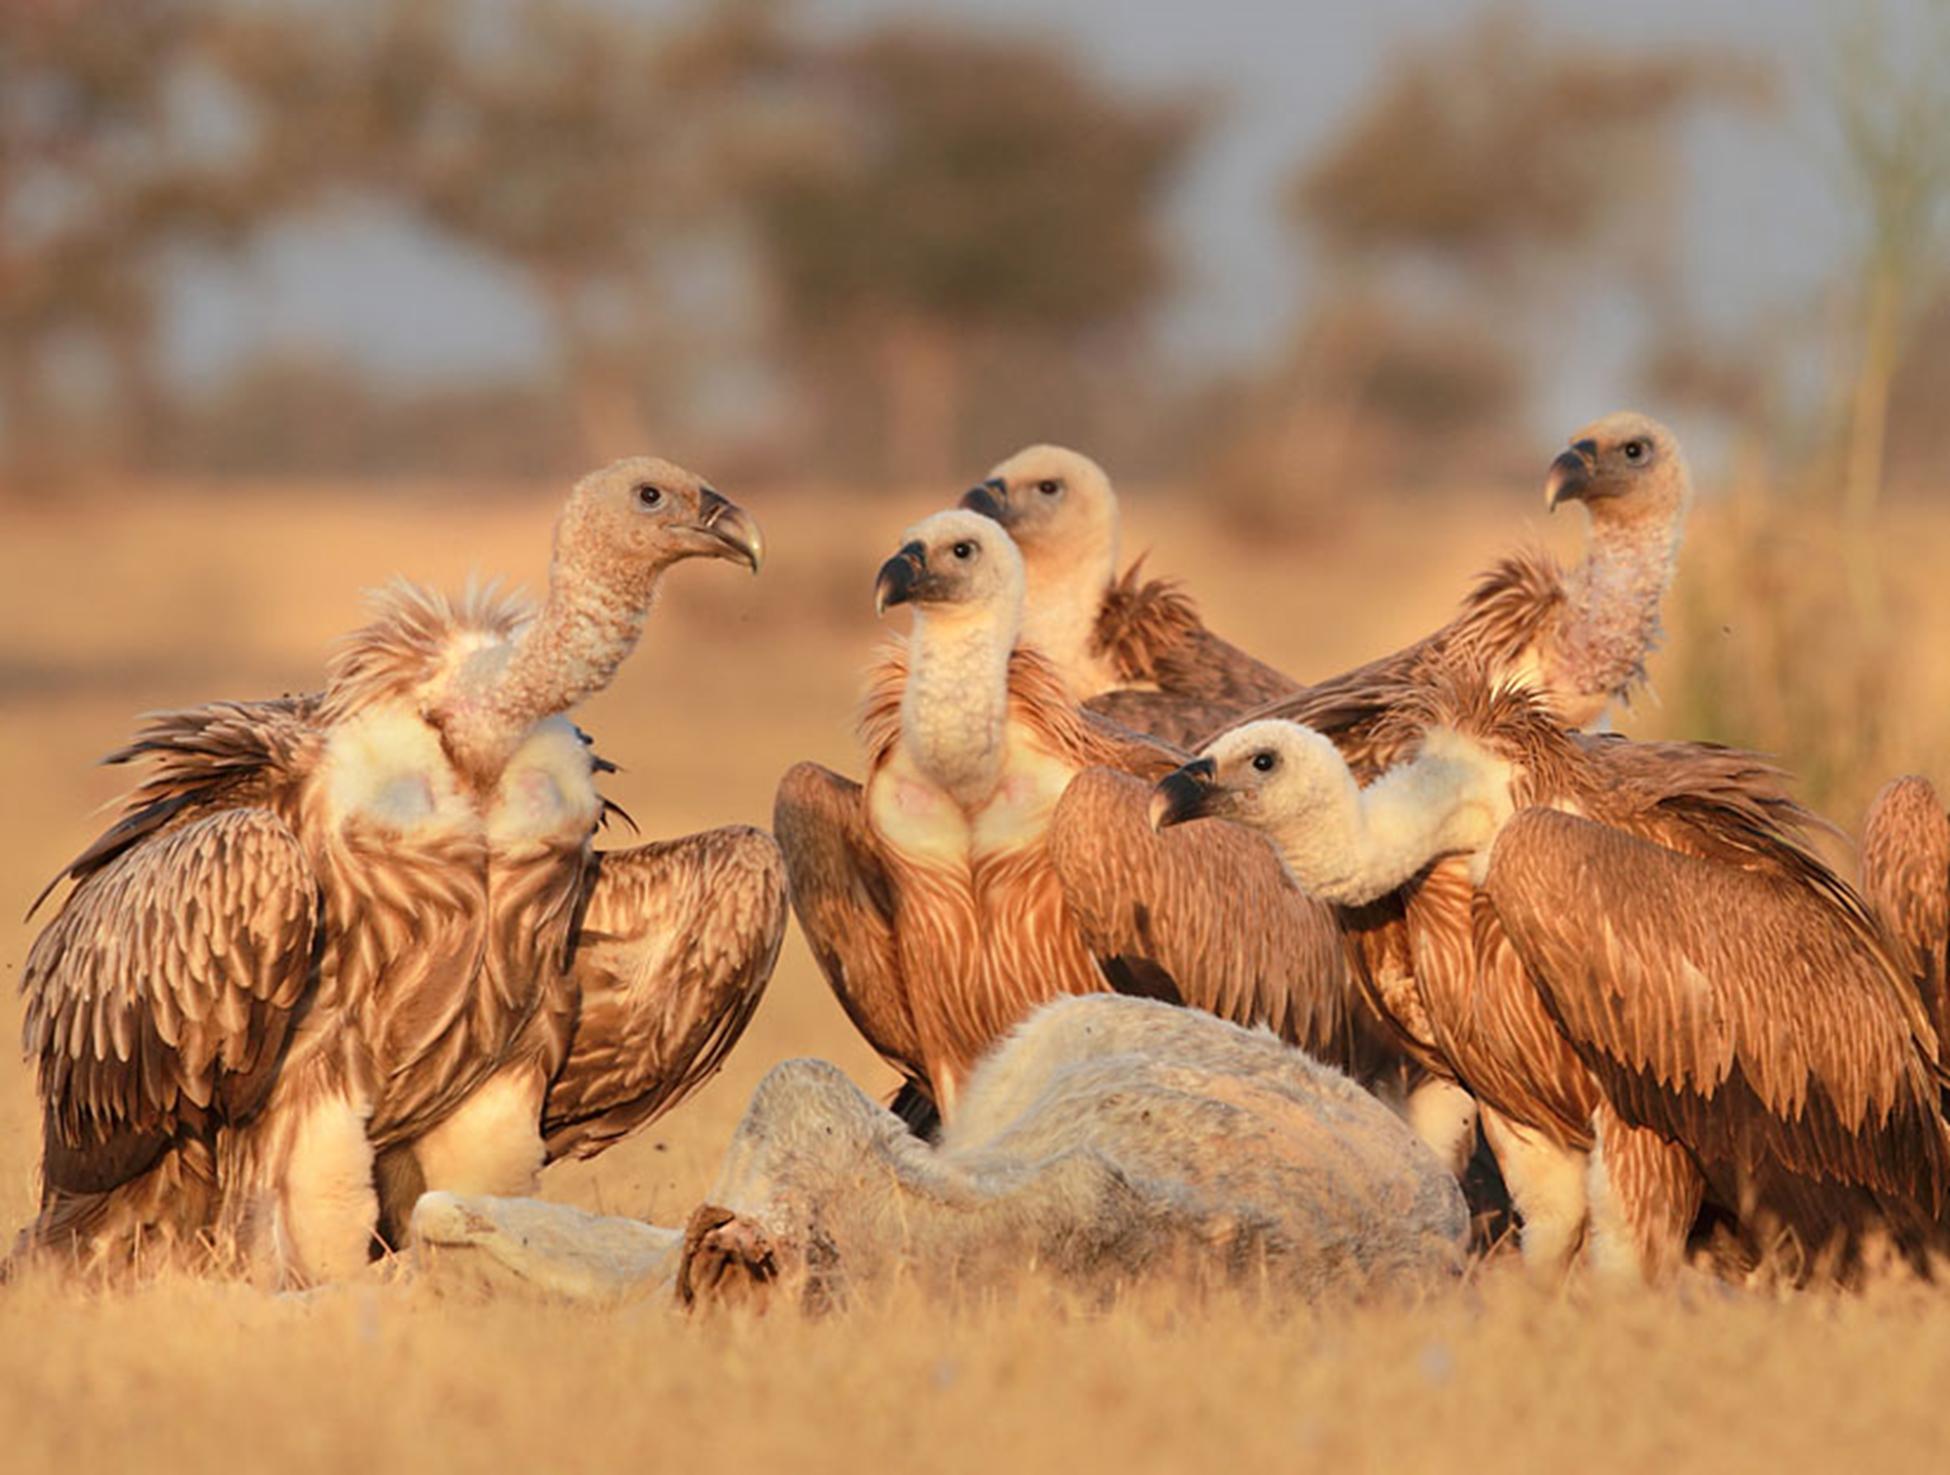 Eurasian griffon (Gyps fulvus) in Thar. Of the nine species of vultures found in India, seven have been observed in the Great Indian Thar desert of Rajasthan. Photo by Gobind Sagar Bhardwaj.